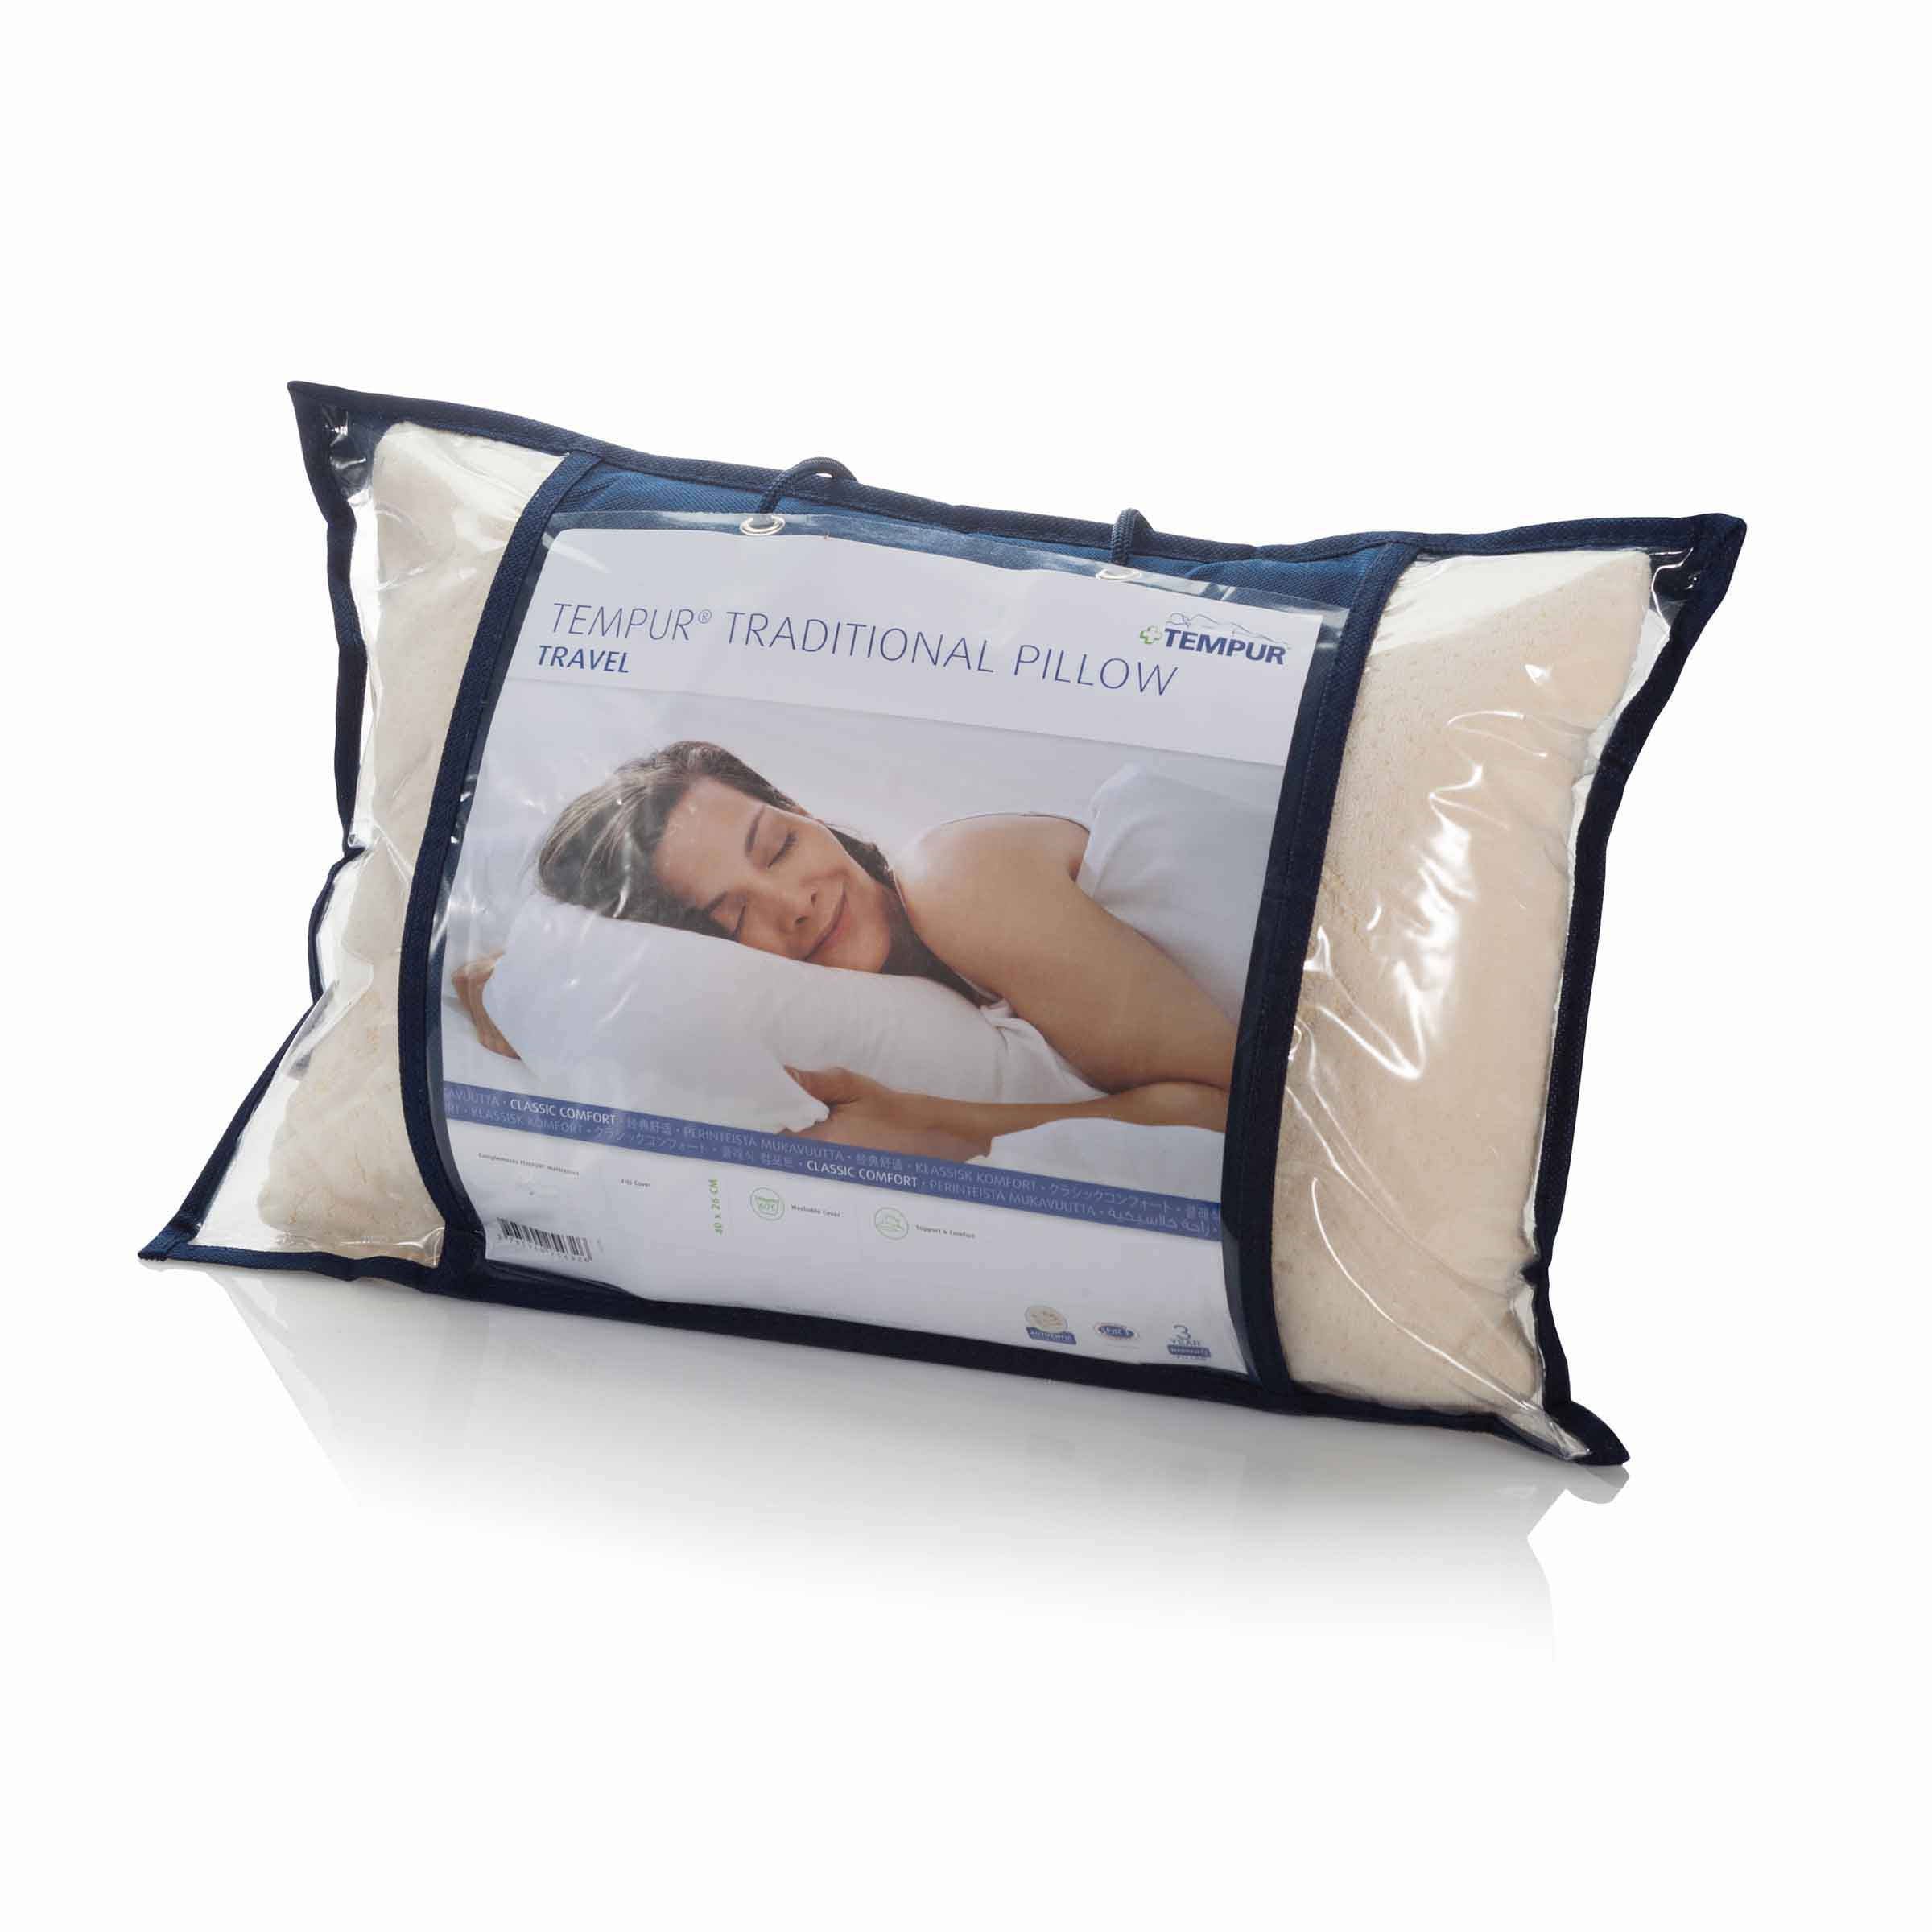 How to get a free Tempur travel pillow by lying down (norm